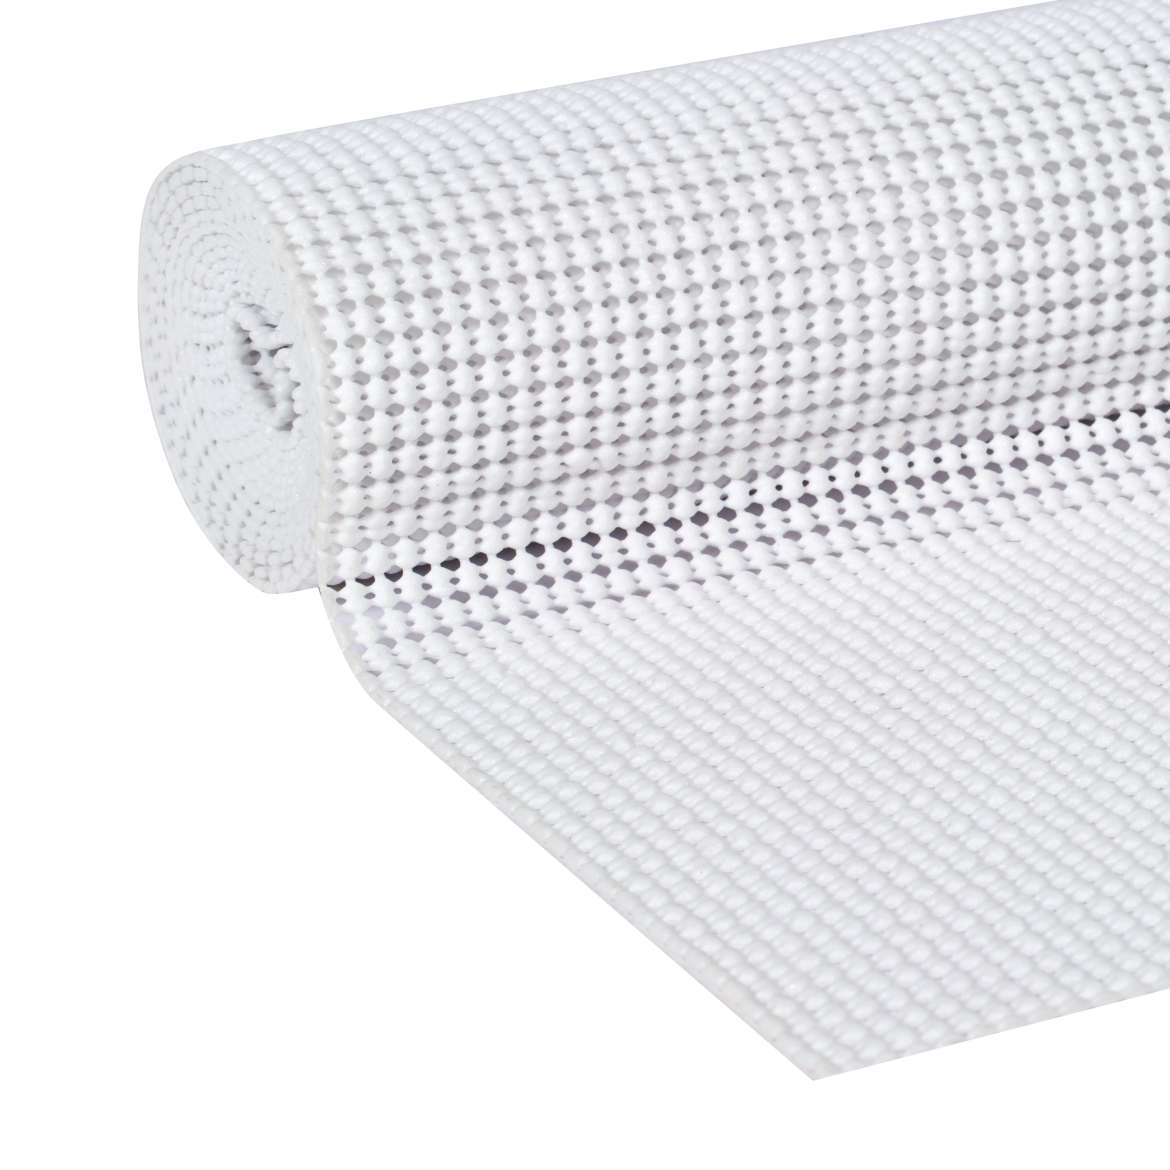 Duck Brand Select Grip Easy Liner Brand Shelf Liner - White, 20 in. x 6 ft.